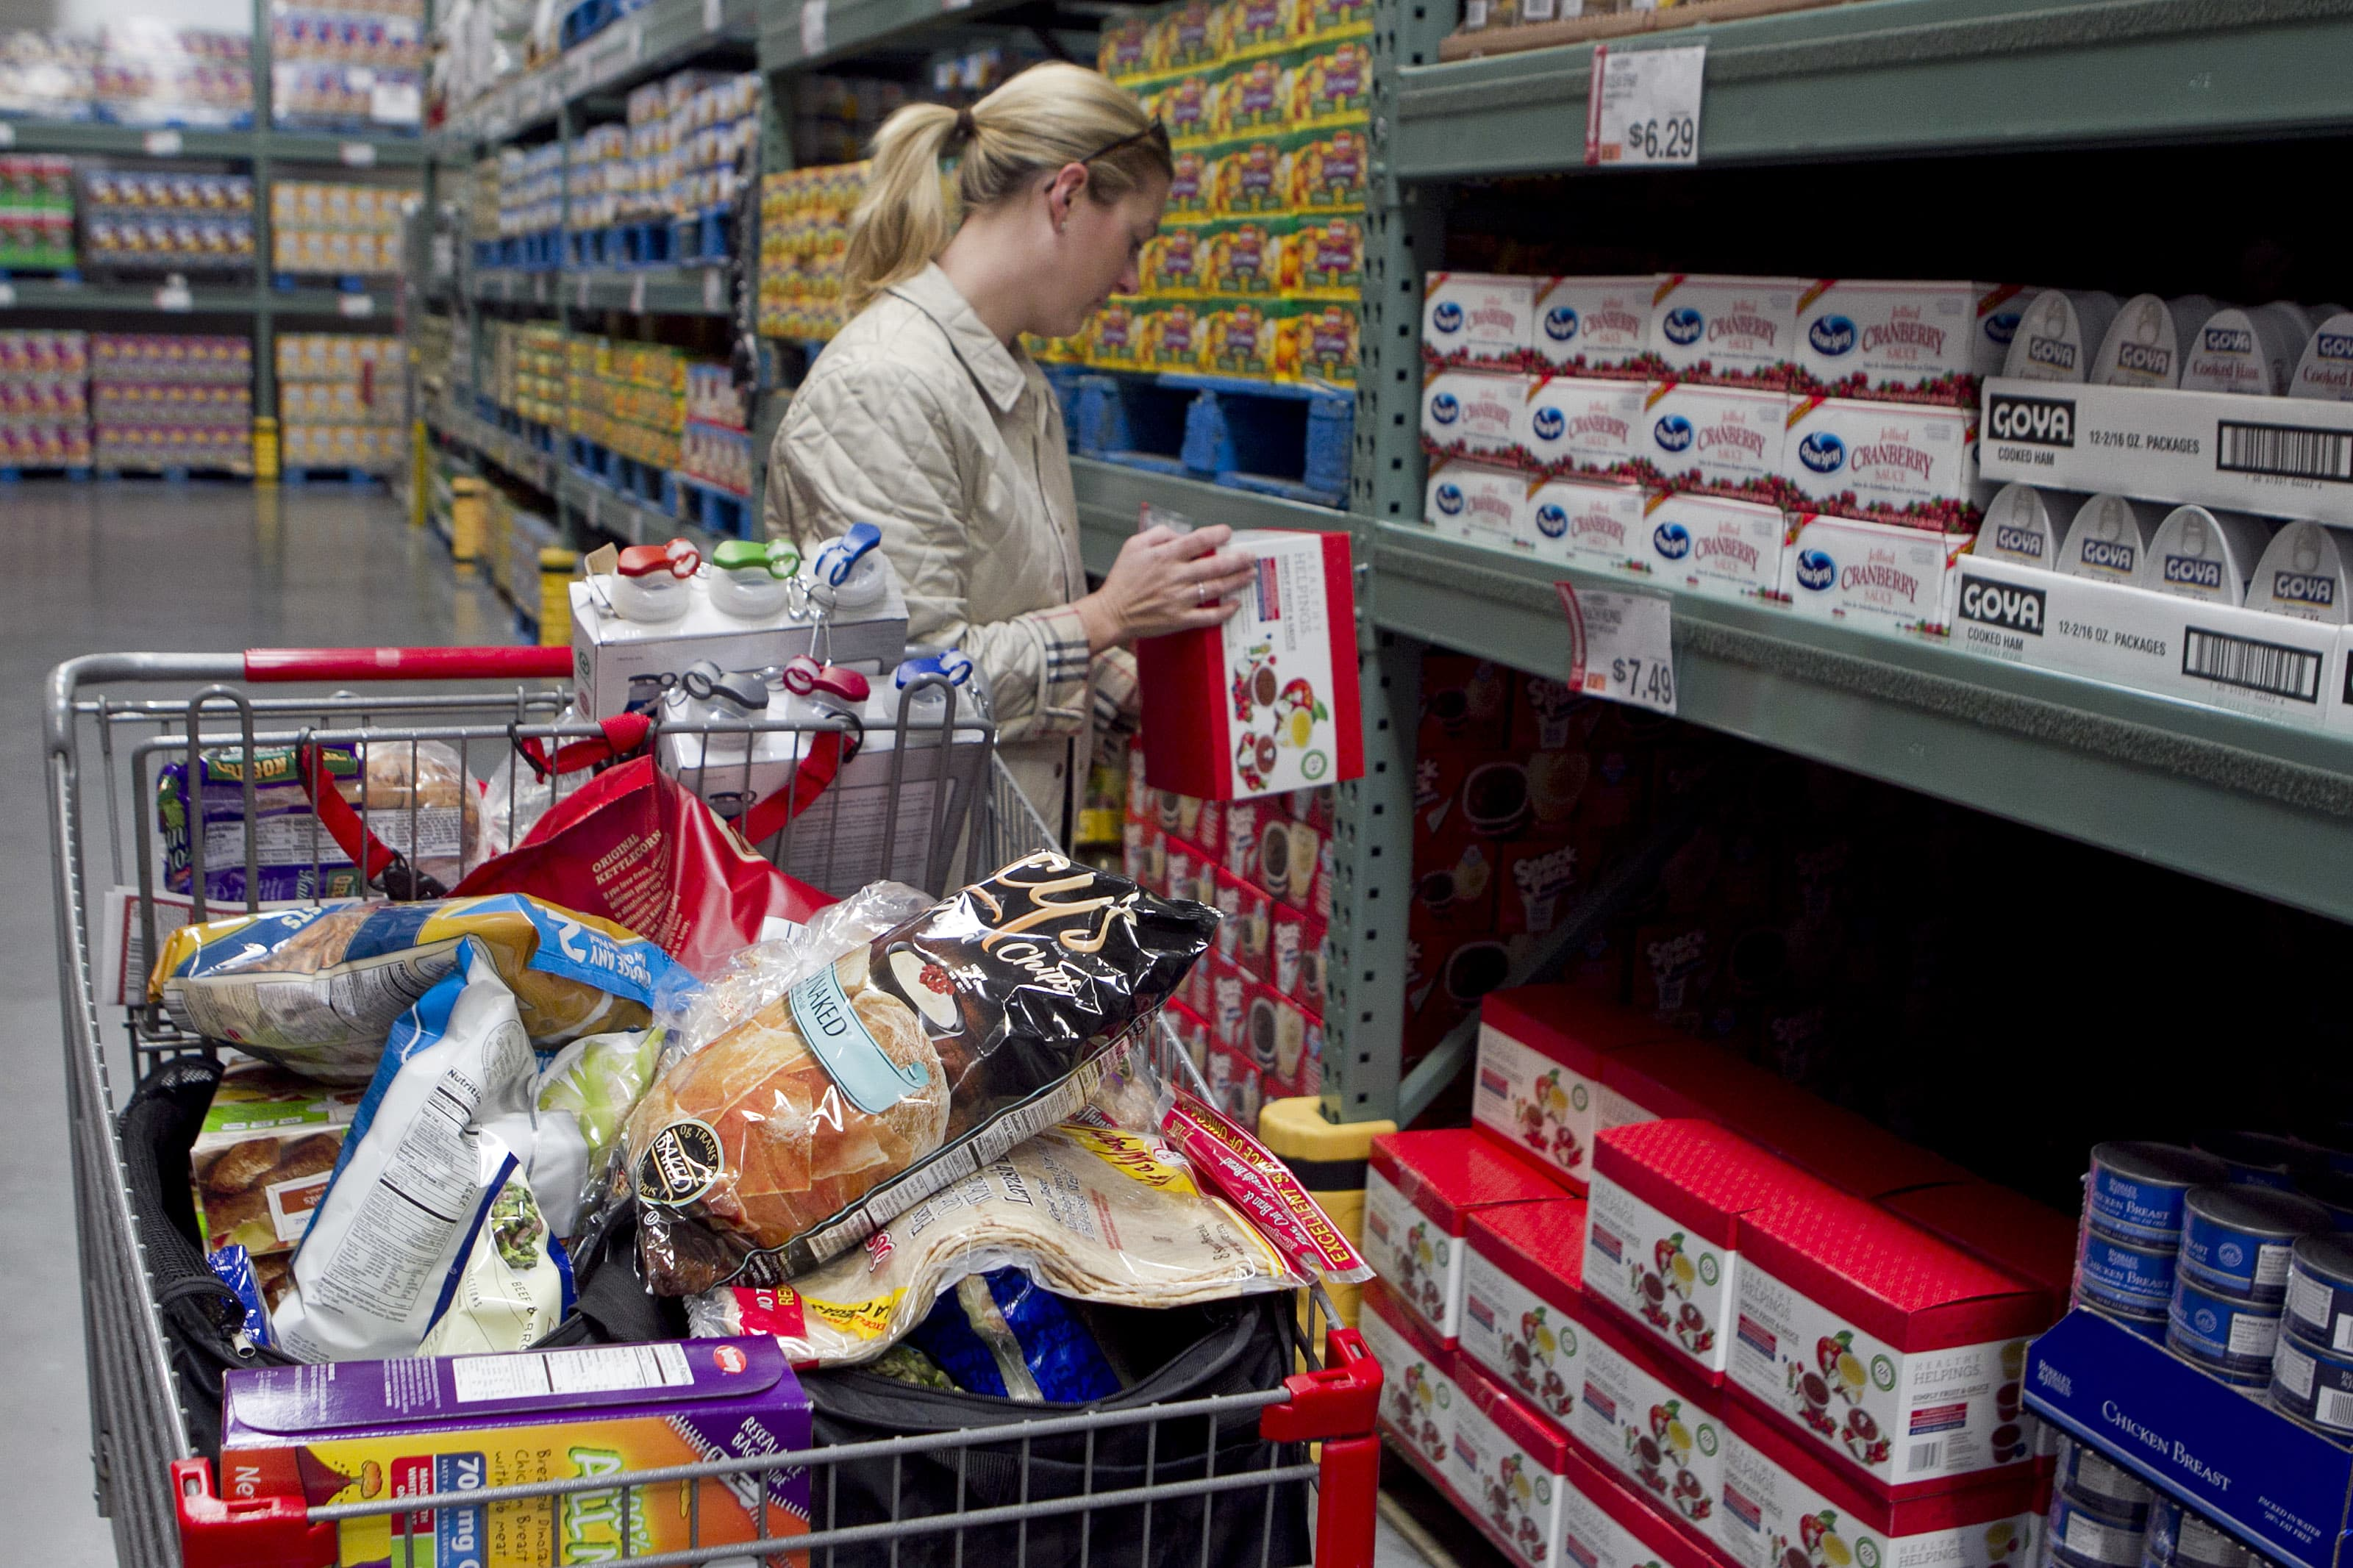 We Compared Bjs And Costco To See Which Has Better Online